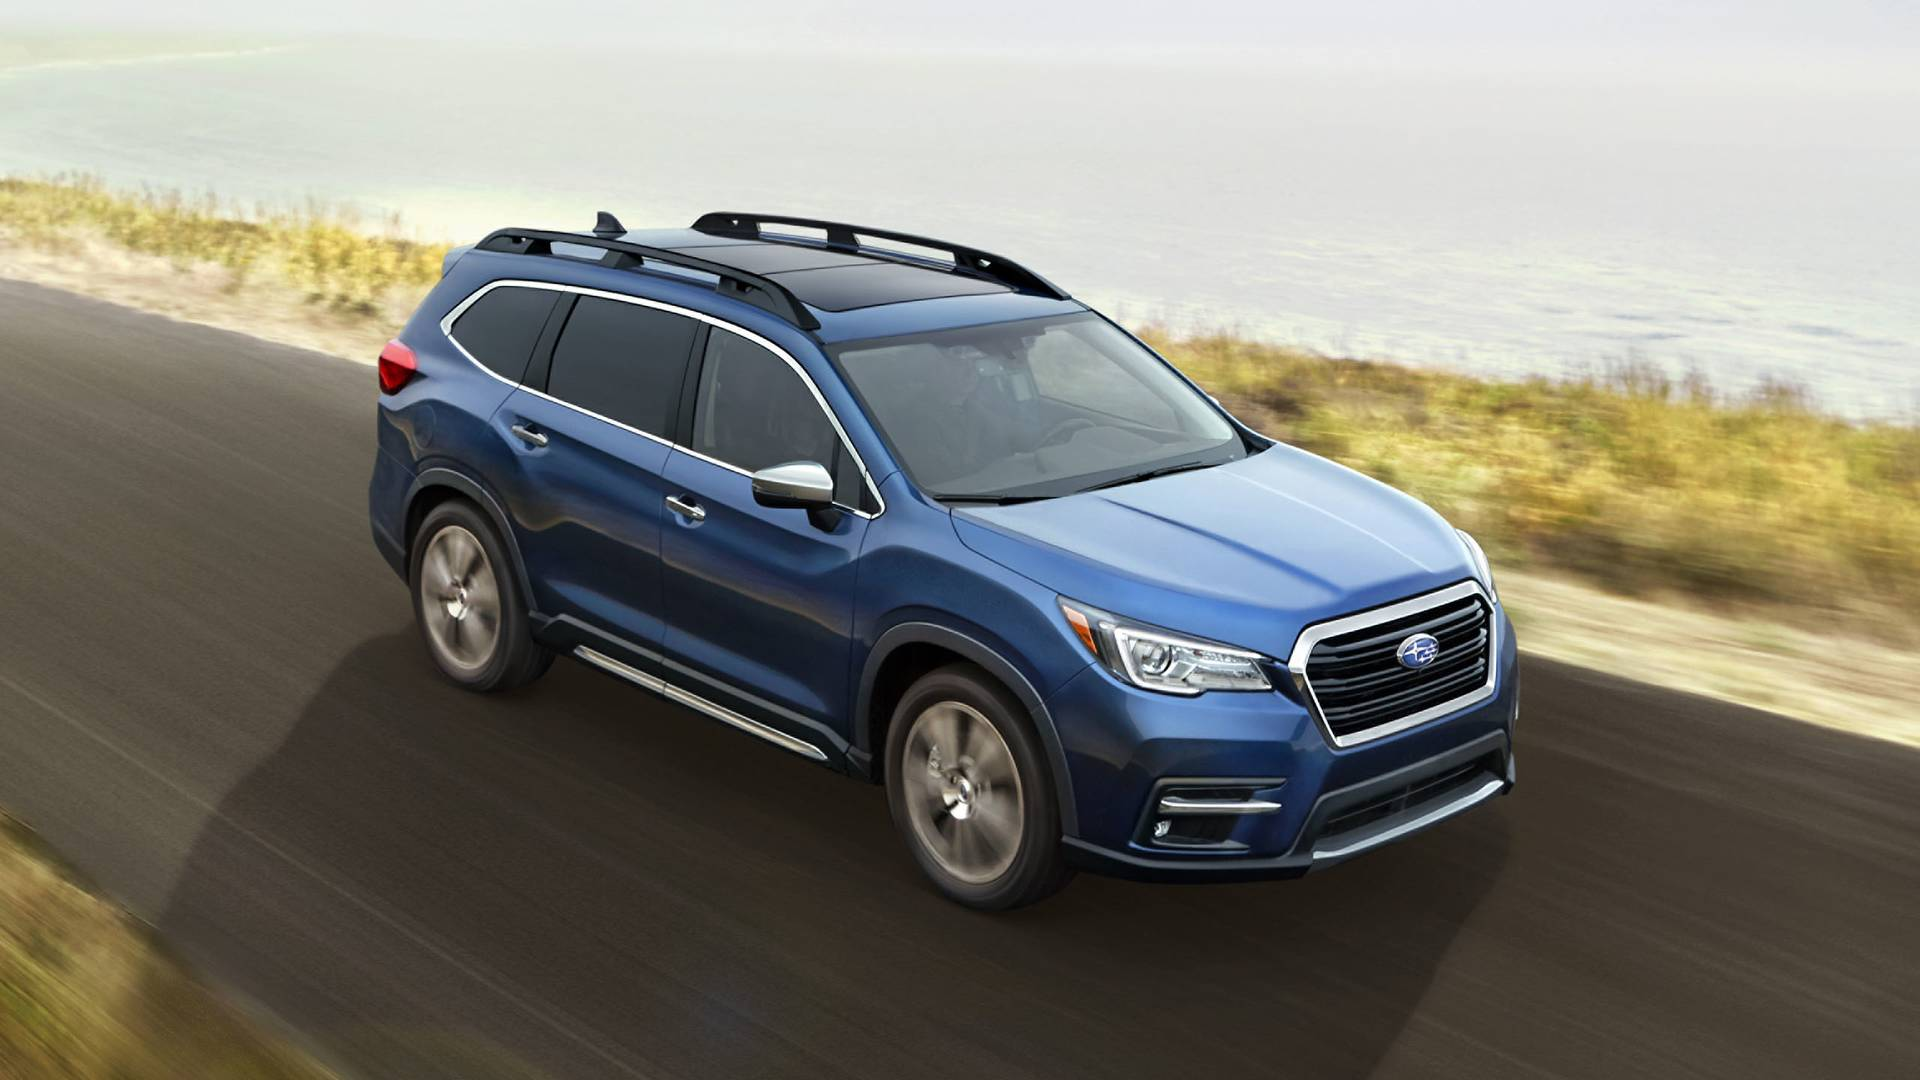 2019_Subaru_Ascent_01